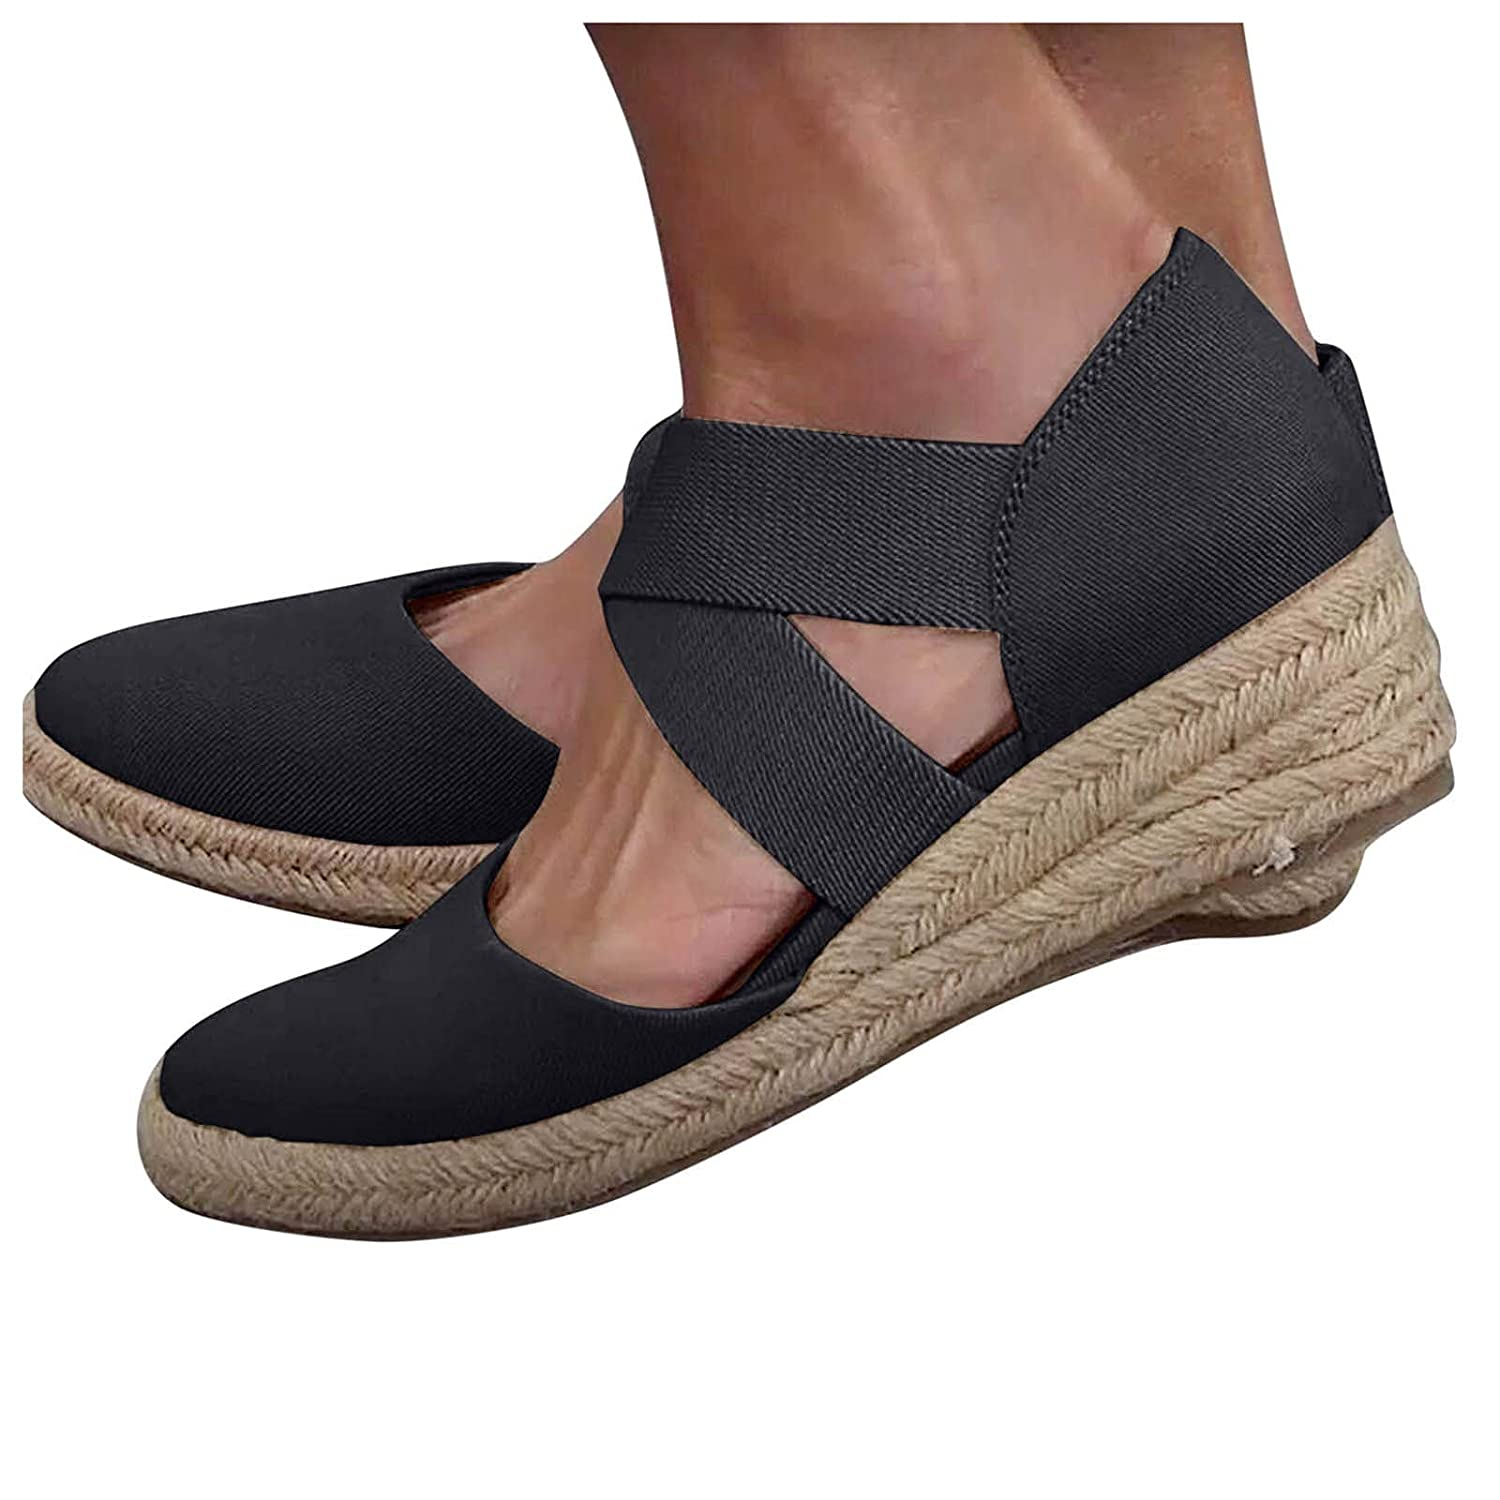 Padaleks Thick Outlet Max 83% OFF sale feature Bottom Platform Sandals Women Casual for Summer S